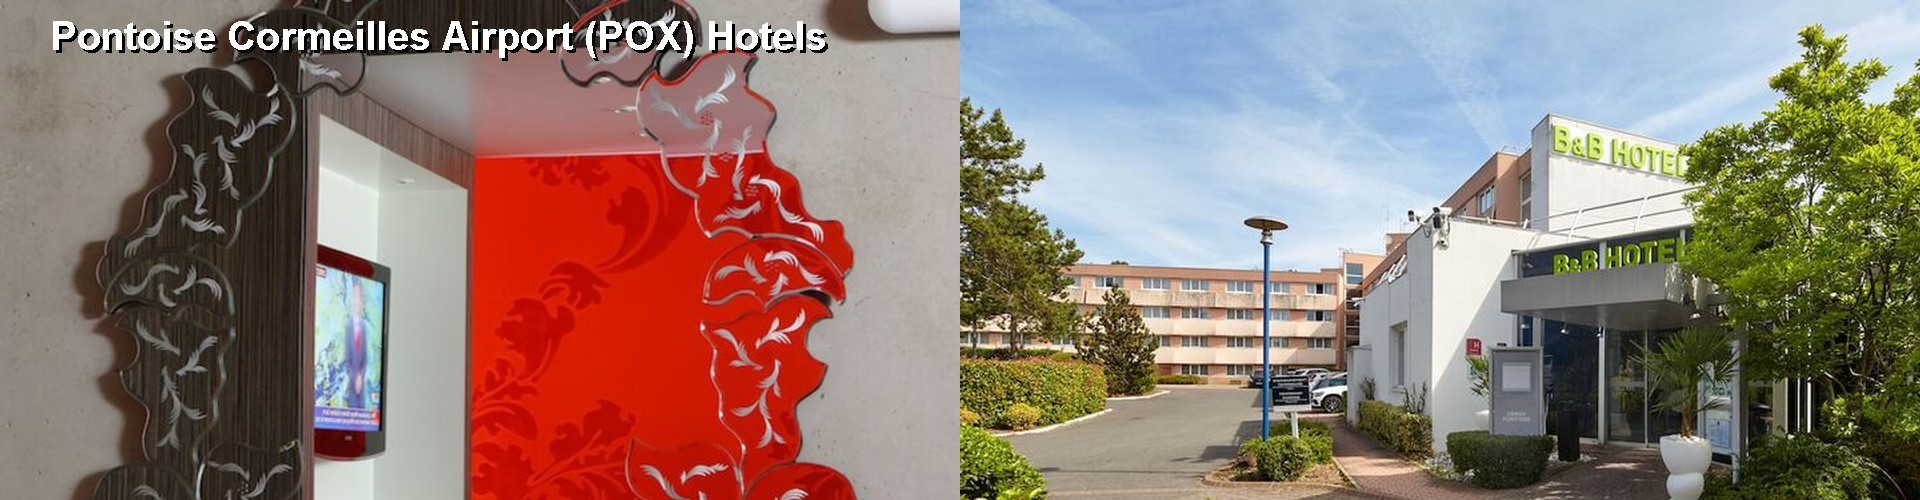 4 Best Hotels near Pontoise Cormeilles Airport (POX)